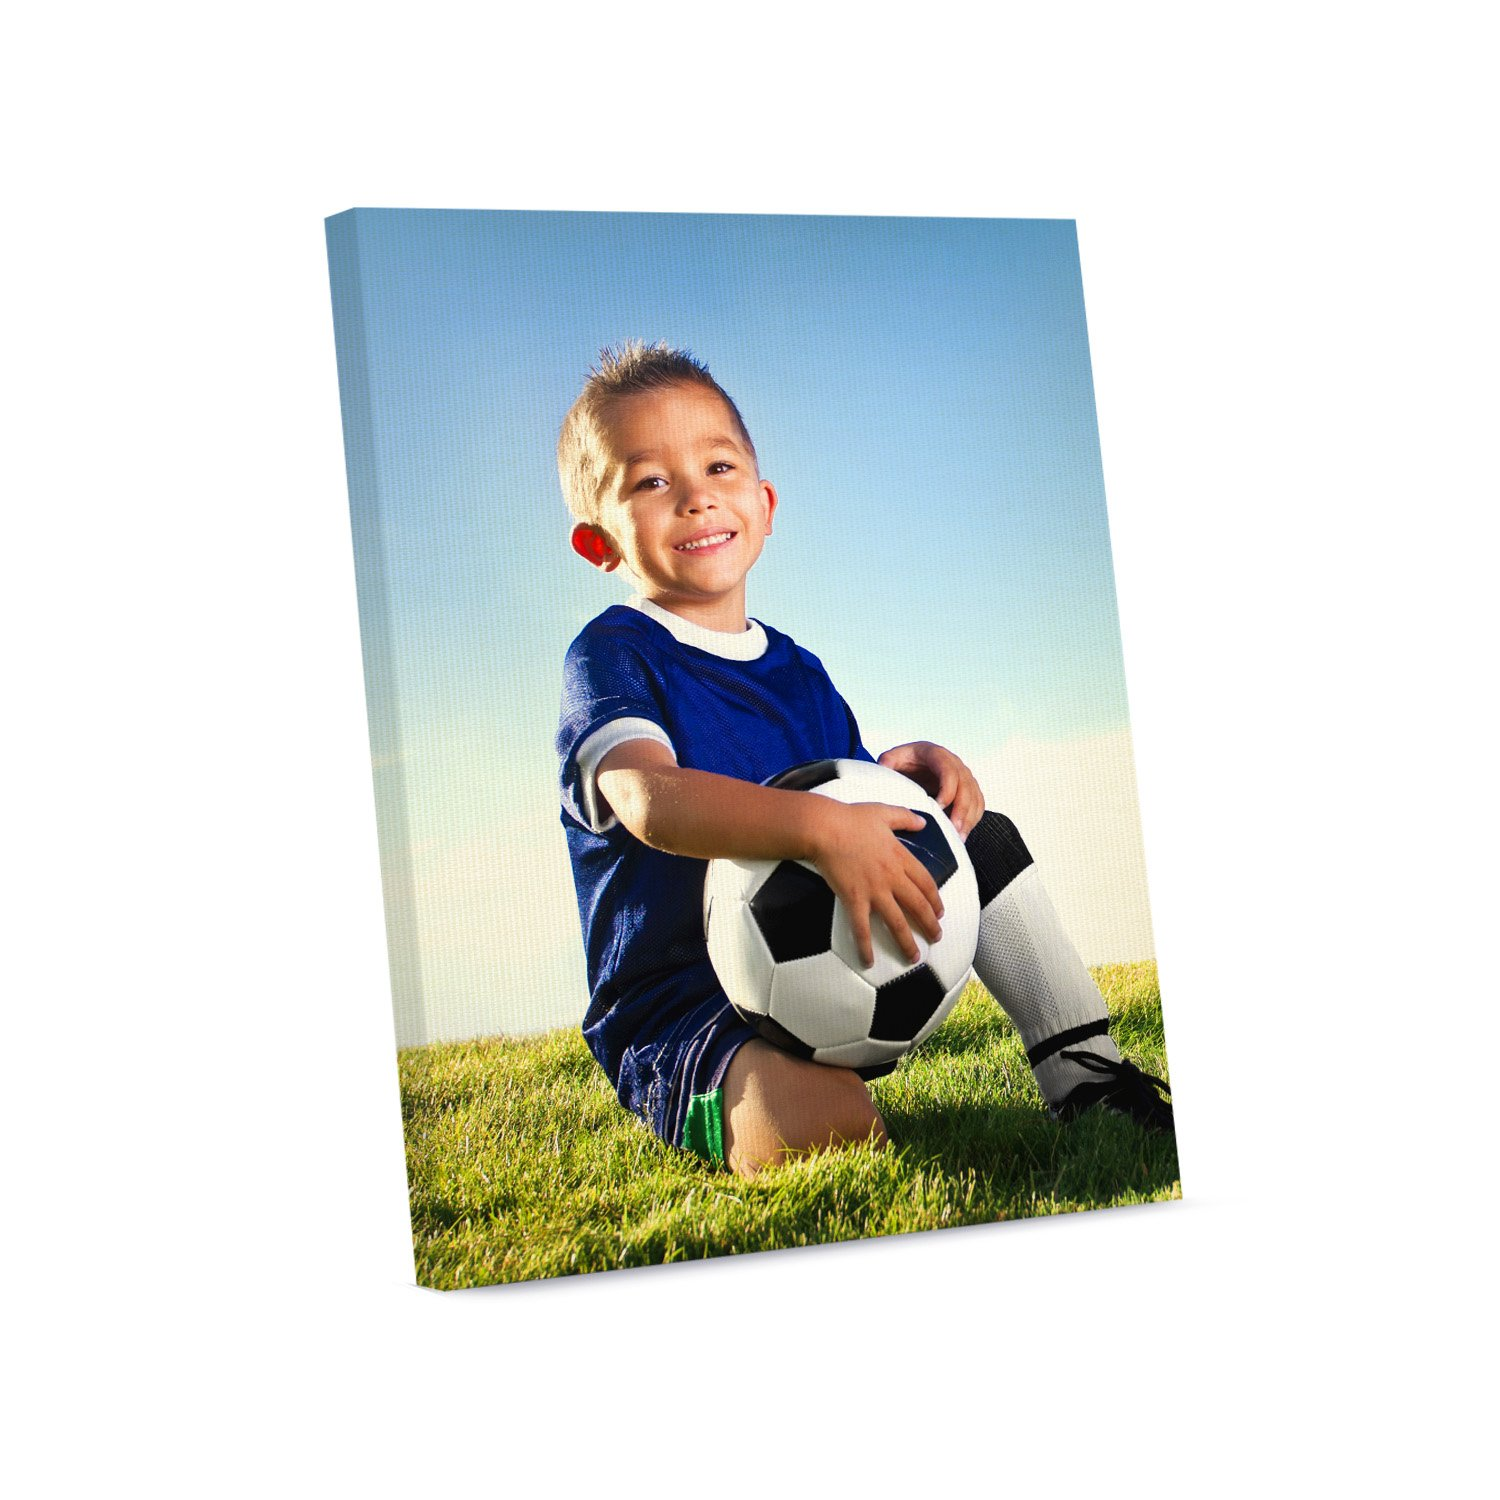 Picture Wall Art Your Photo or Art on Custom Canvas Print 8 x 10 Stretched over Standard Wooden Frame